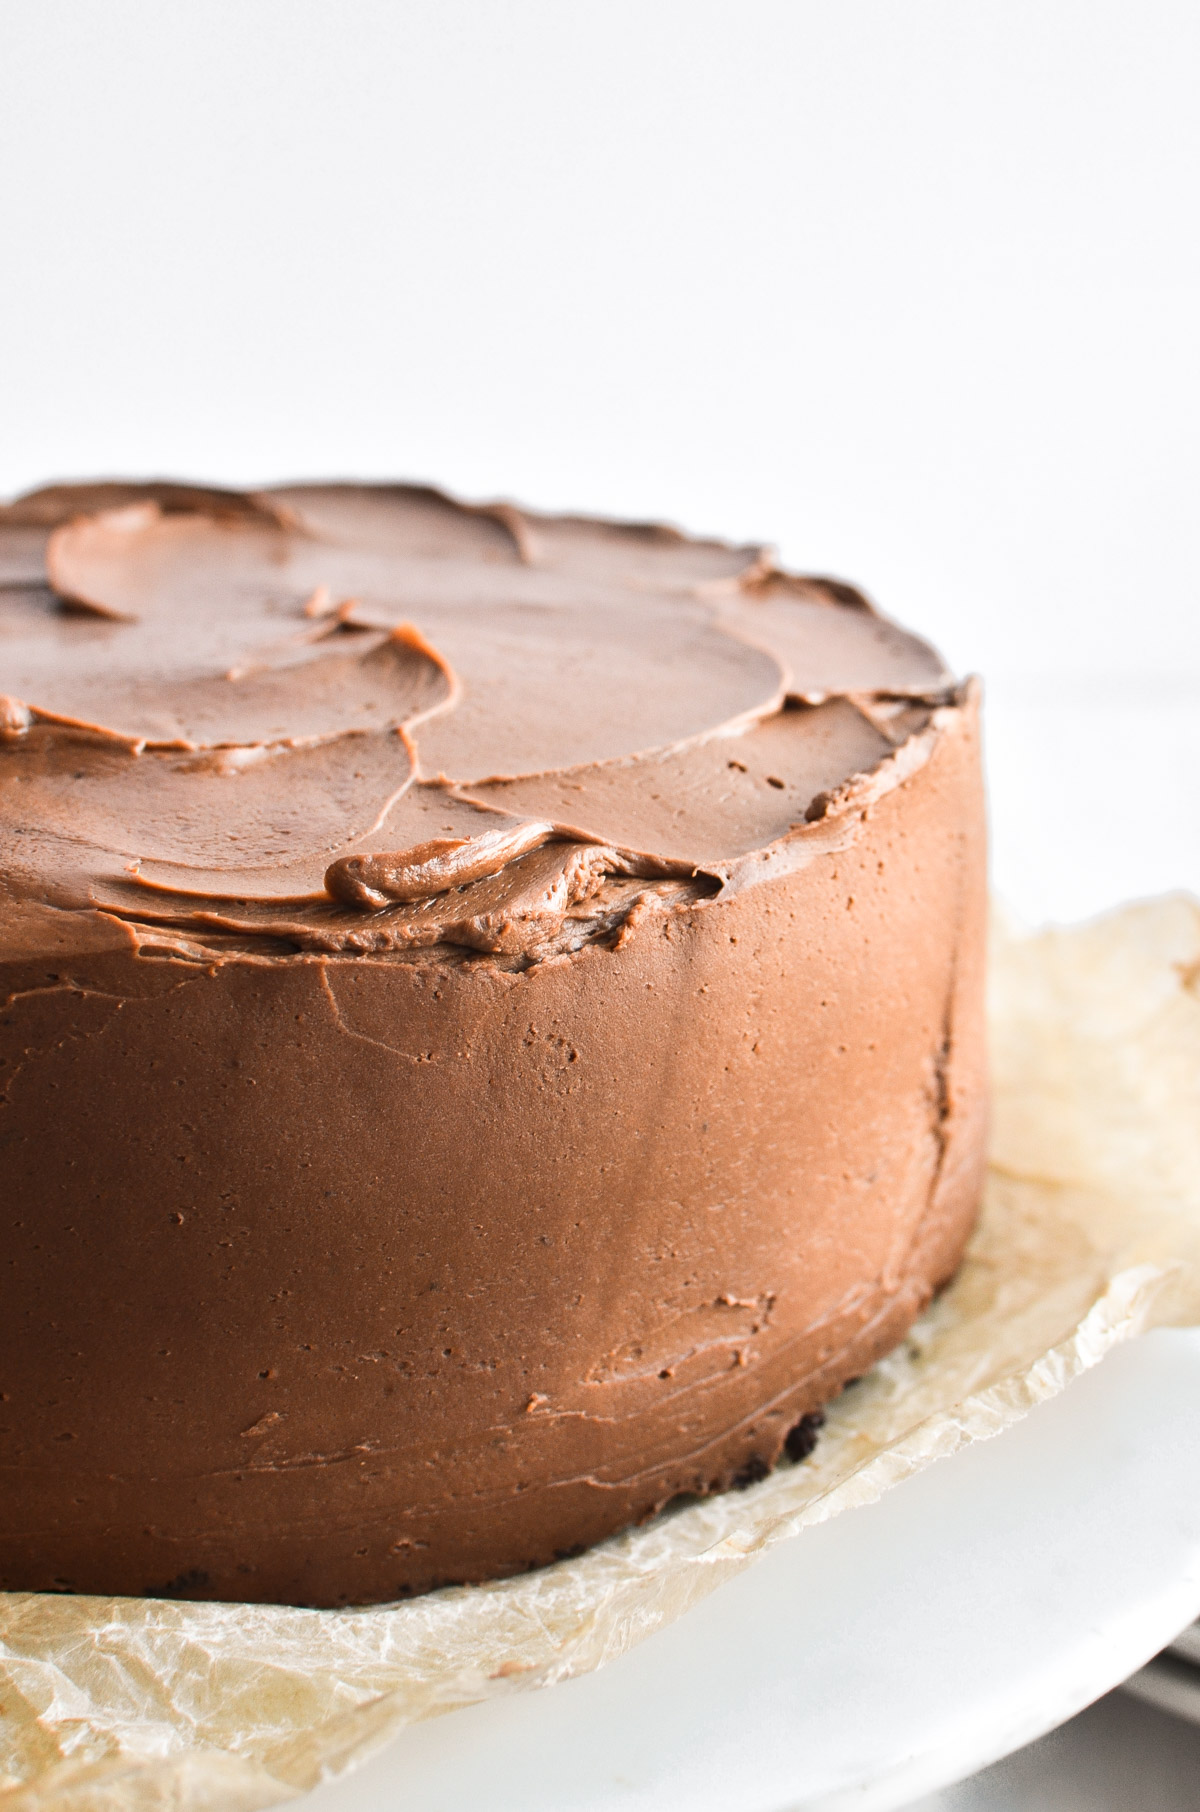 Chocolate layer cake with chocolate frosting.